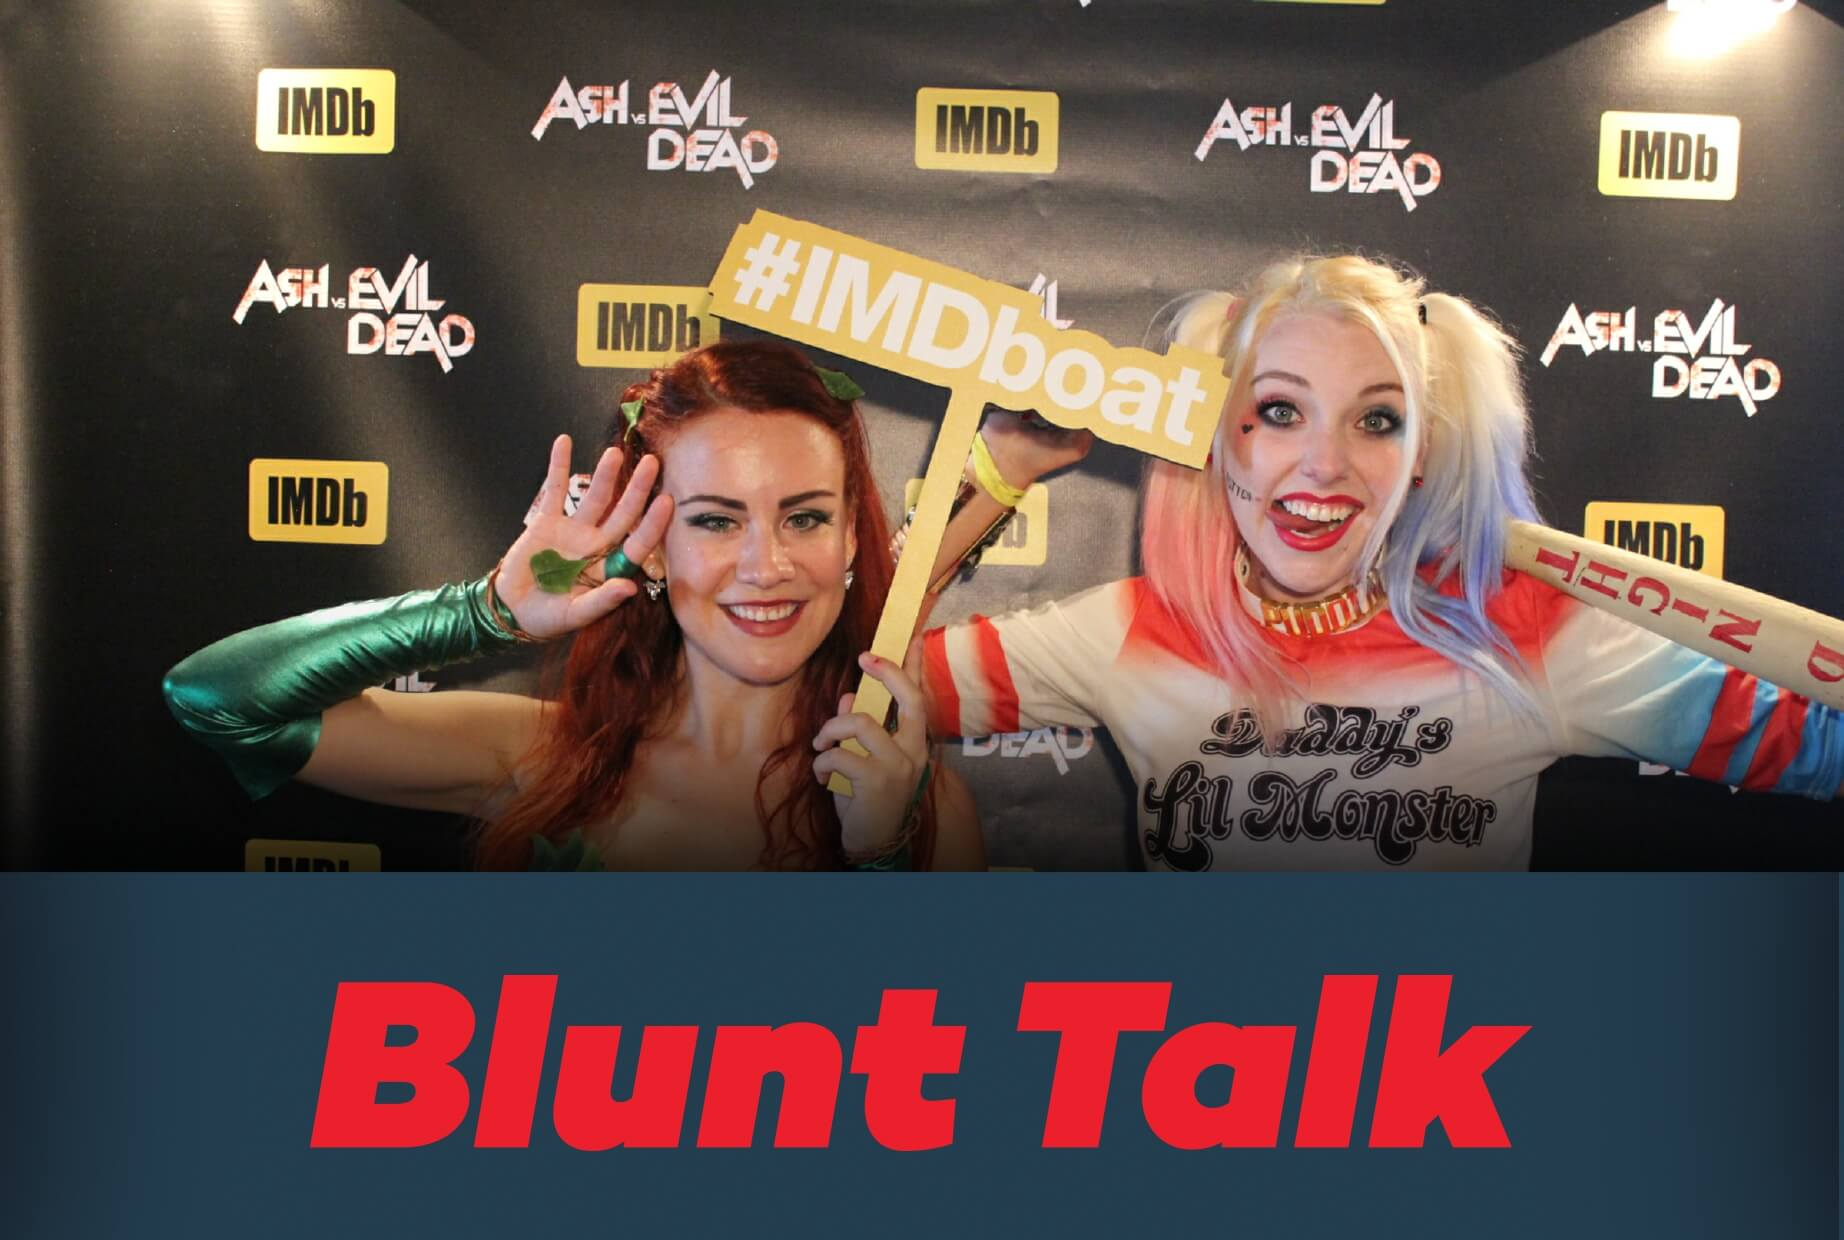 Comic Con Blunt Talk Photo Booth